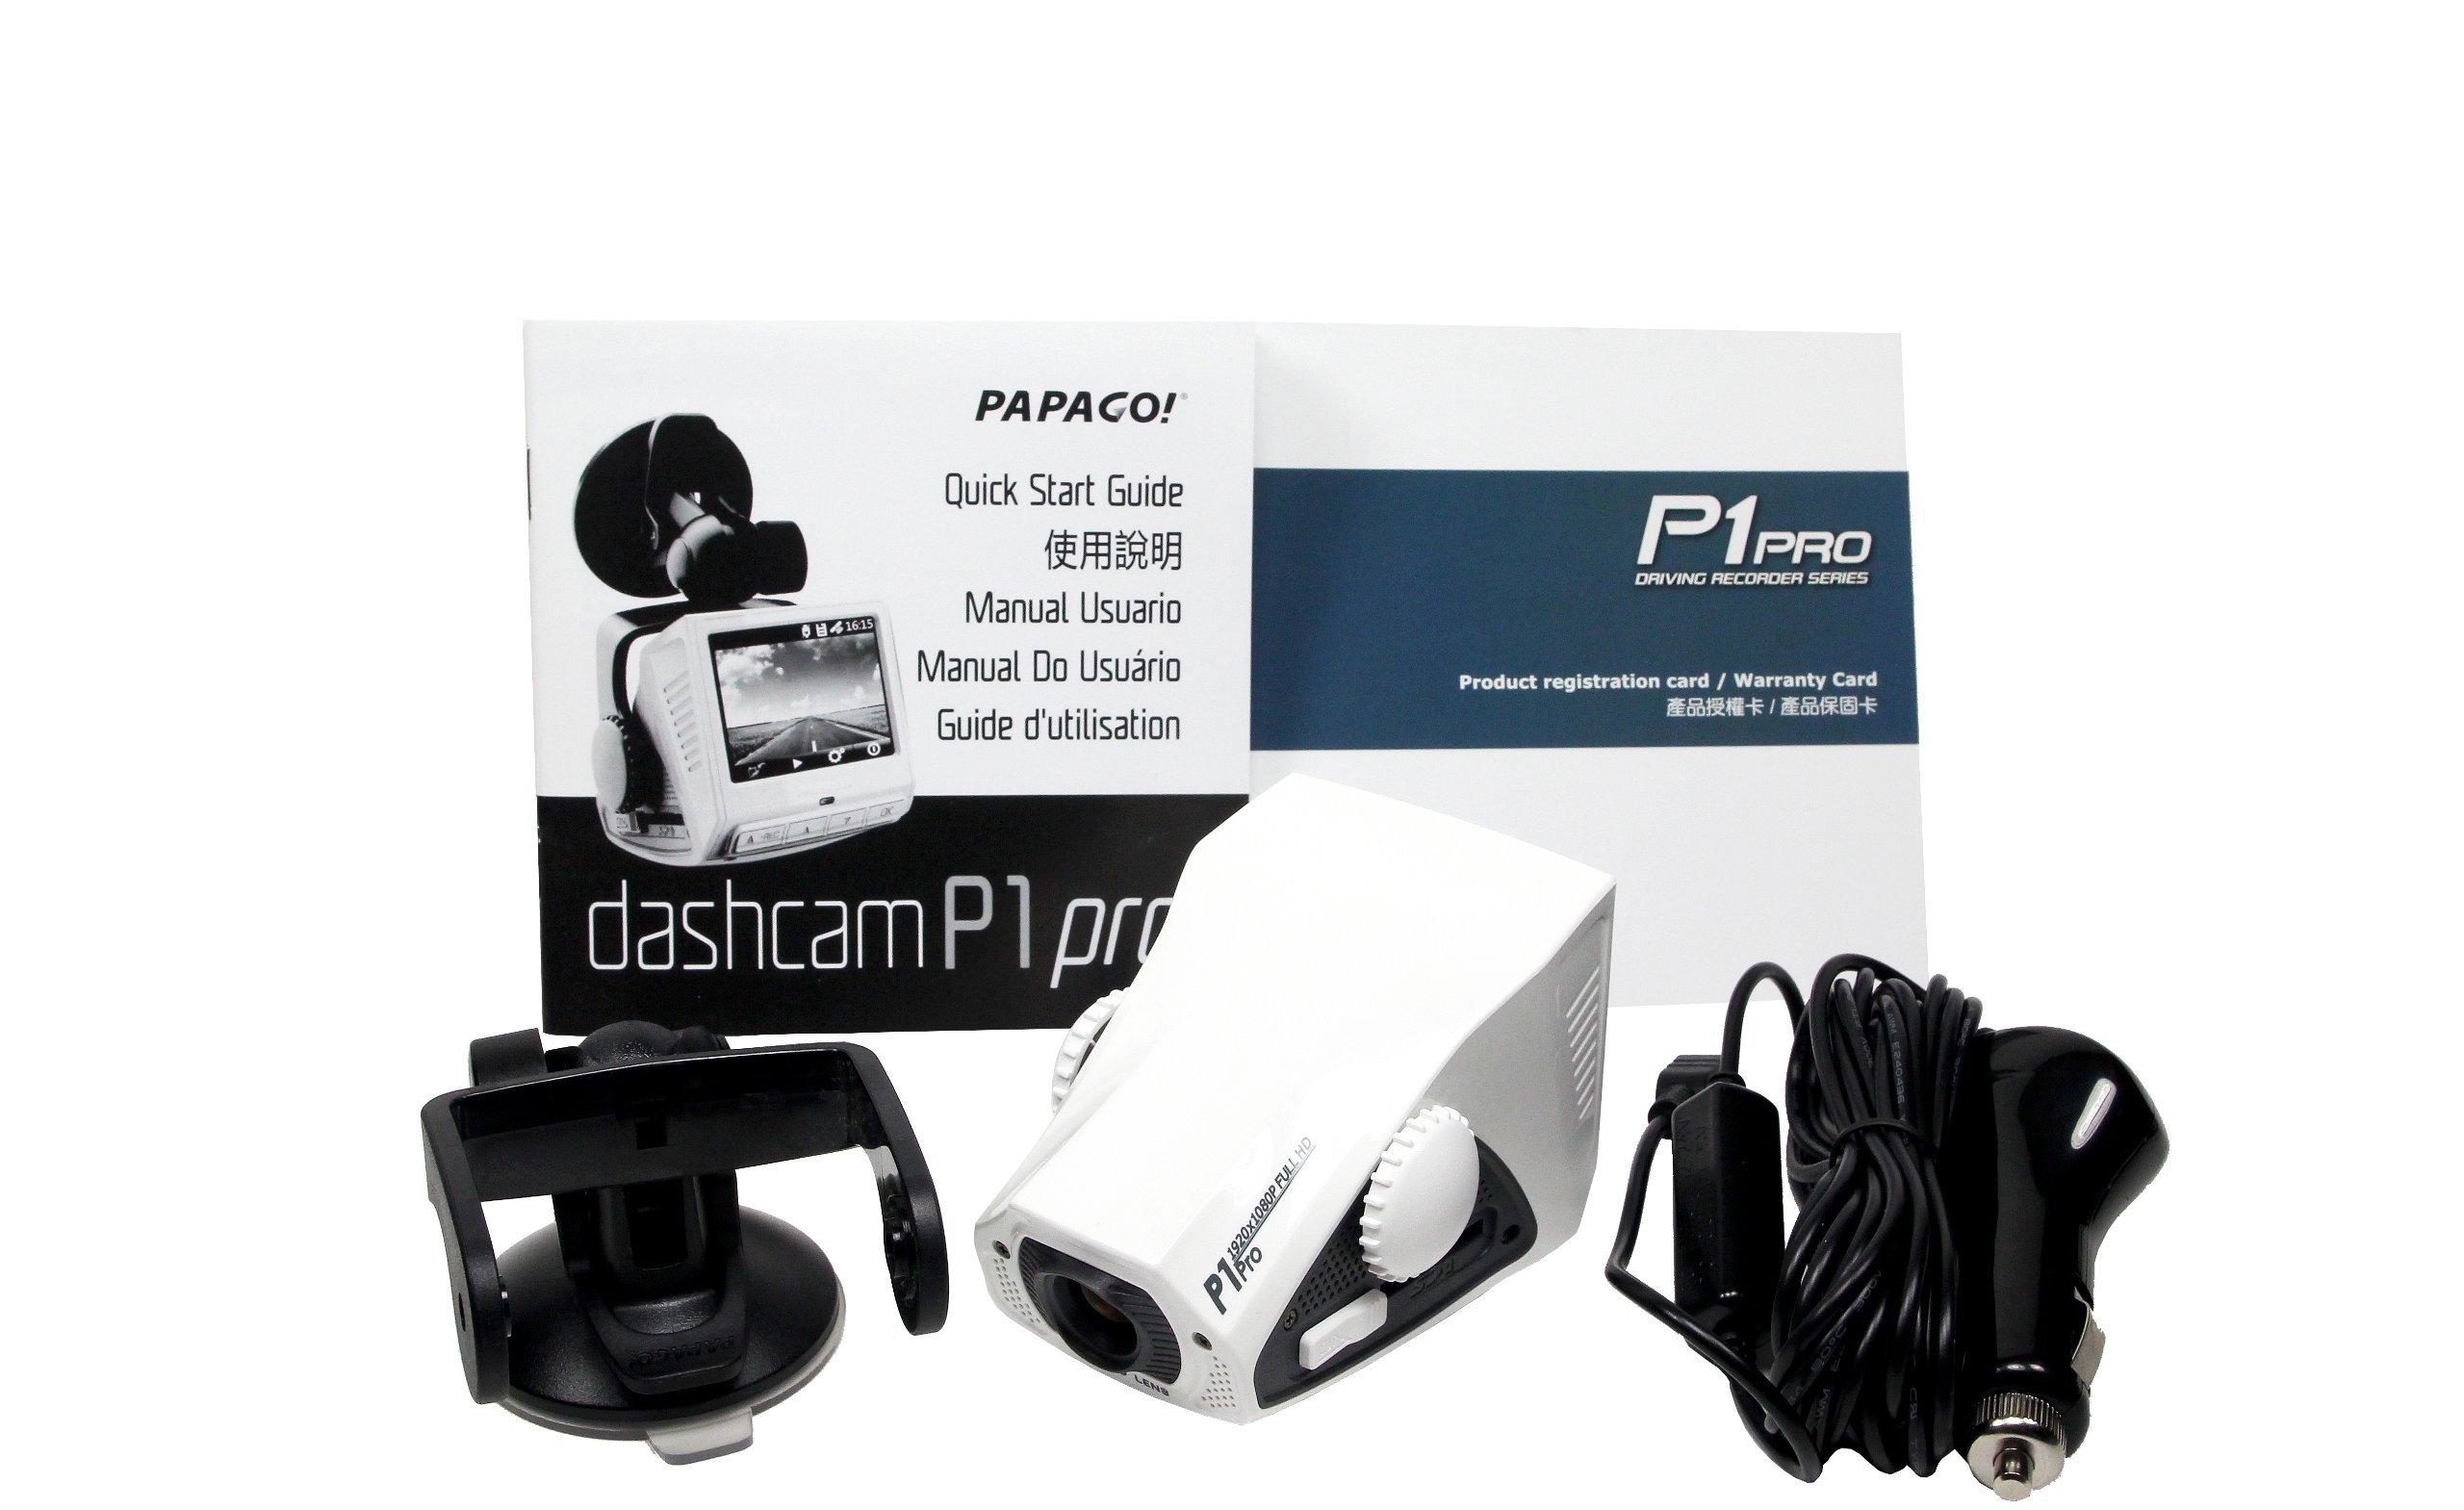 PAPAGO P1PRO-US P1 Pro Full HD 1080P Wide Viewing Angle Dashcam 2.4-Inch LCD (White) by PAPAGO